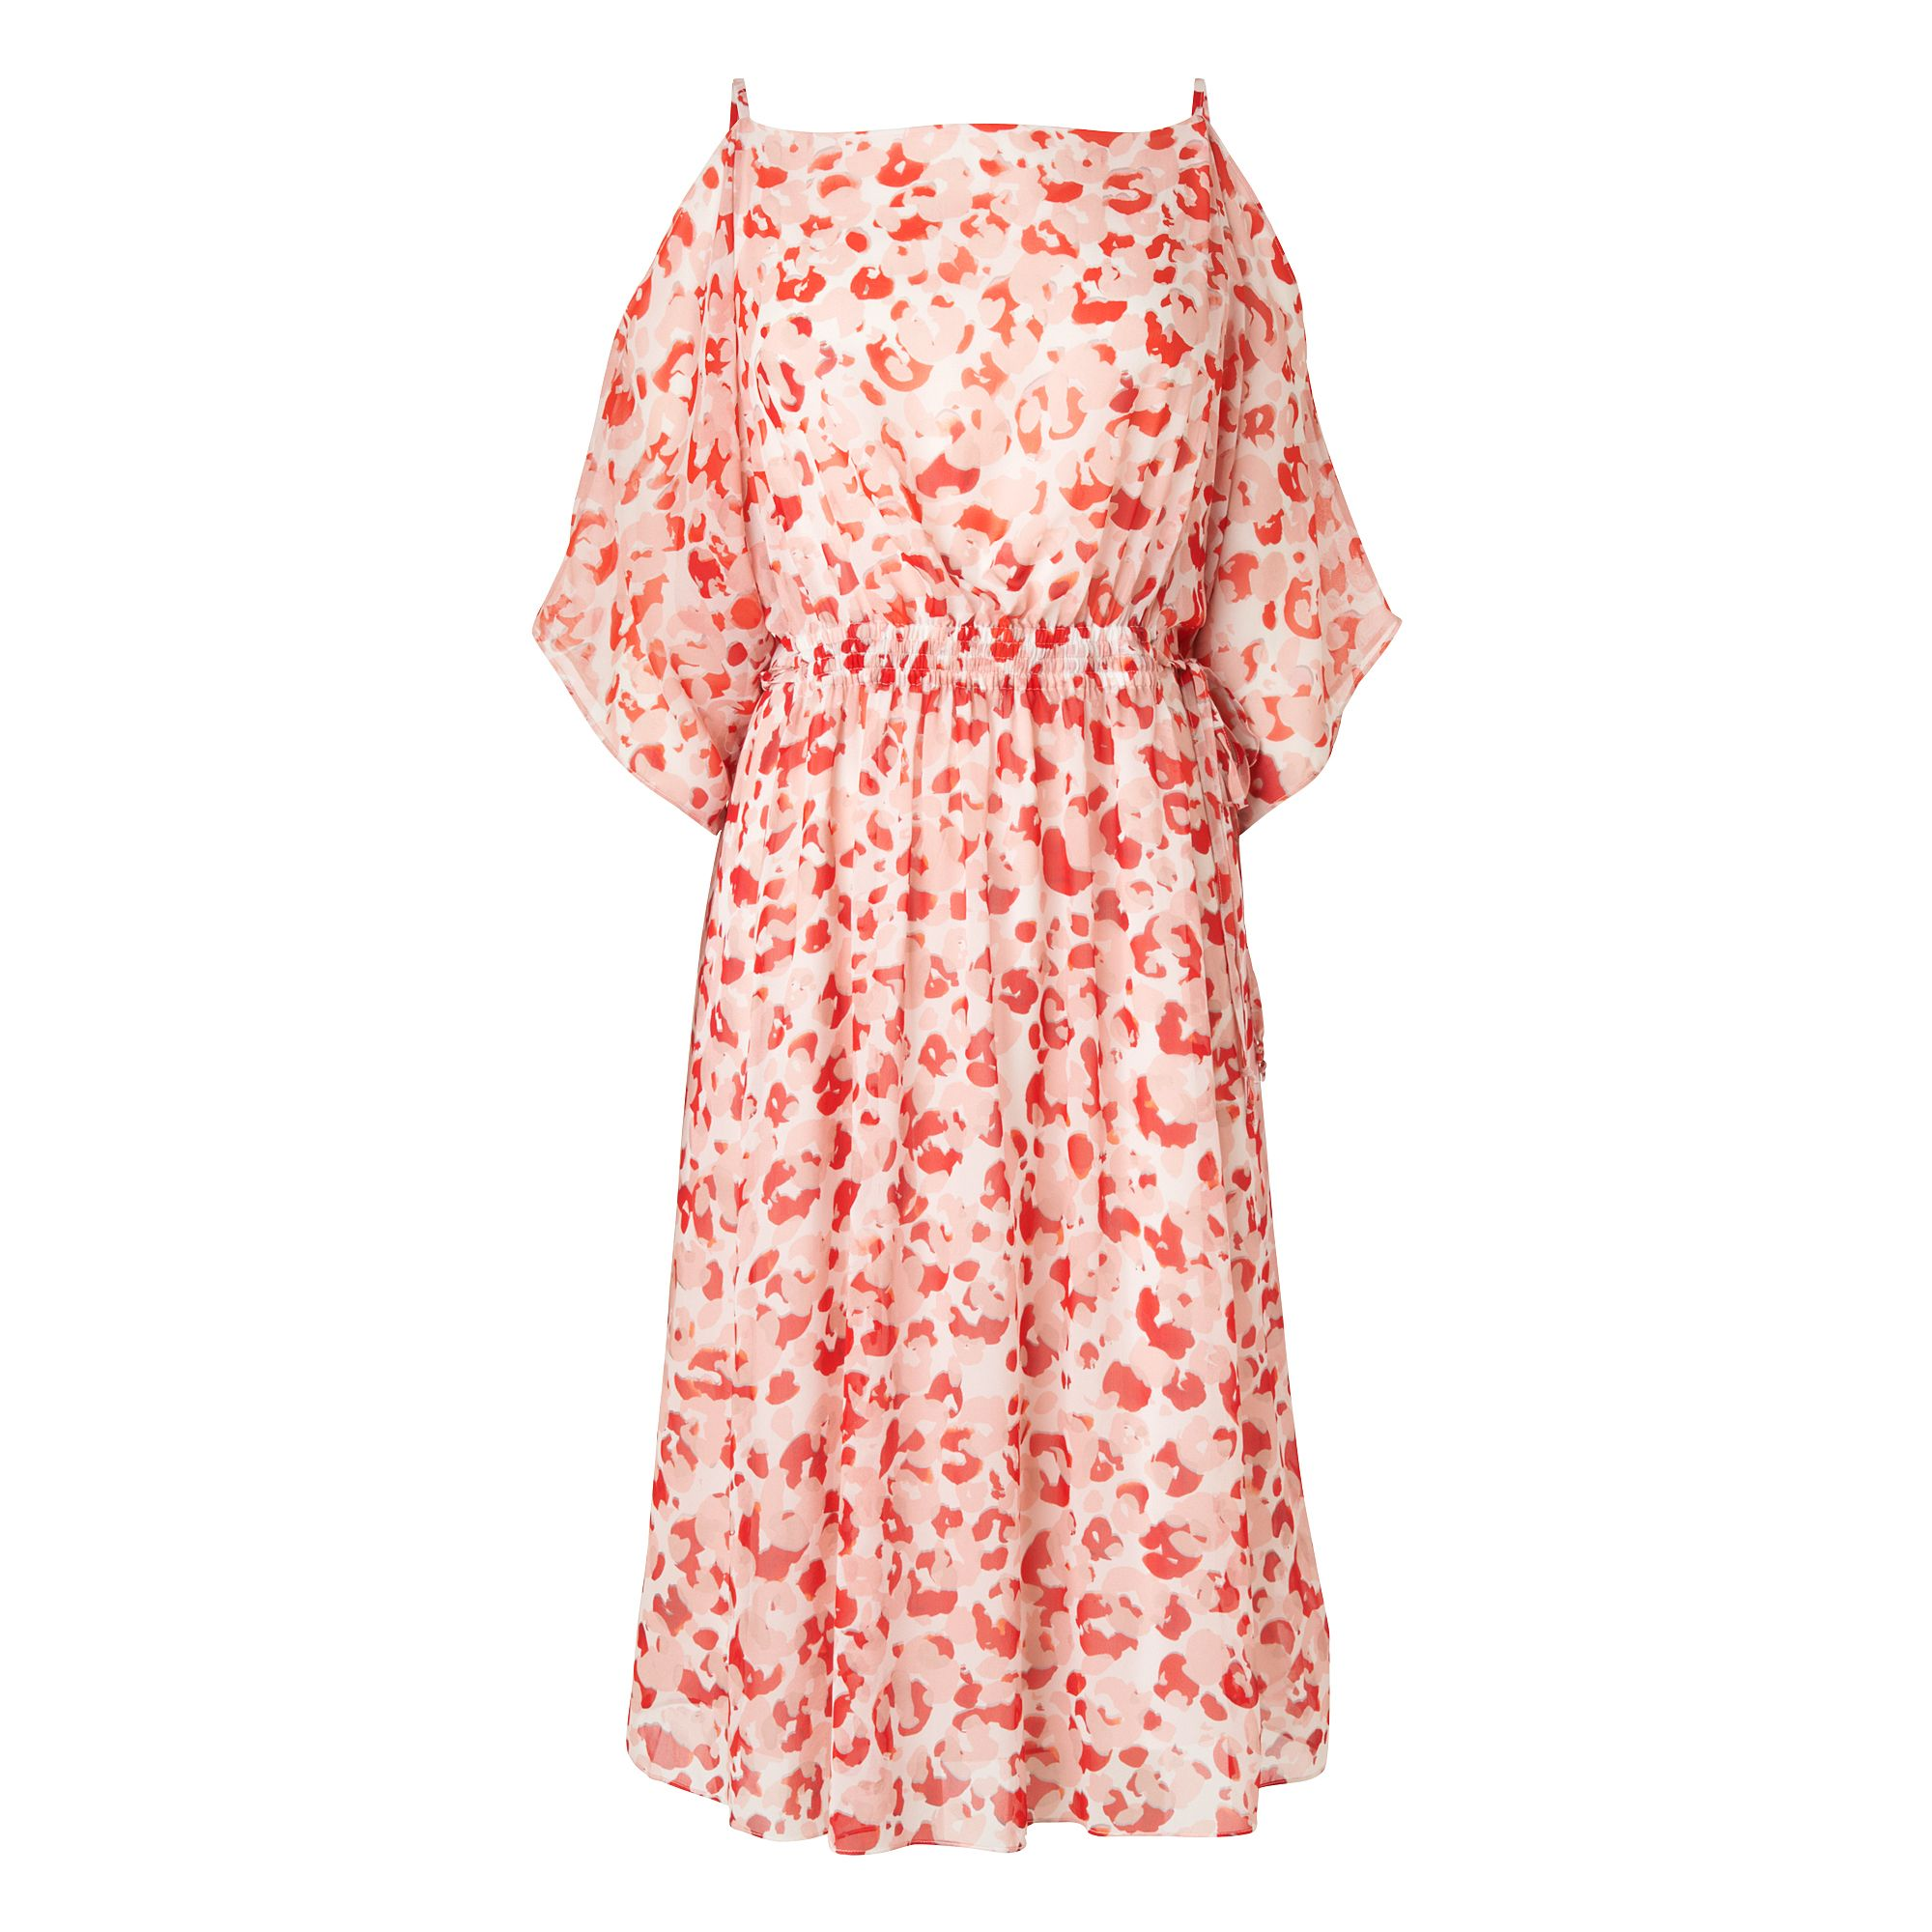 L.K. Bennett Marnie Silk Printed Dresses, Red